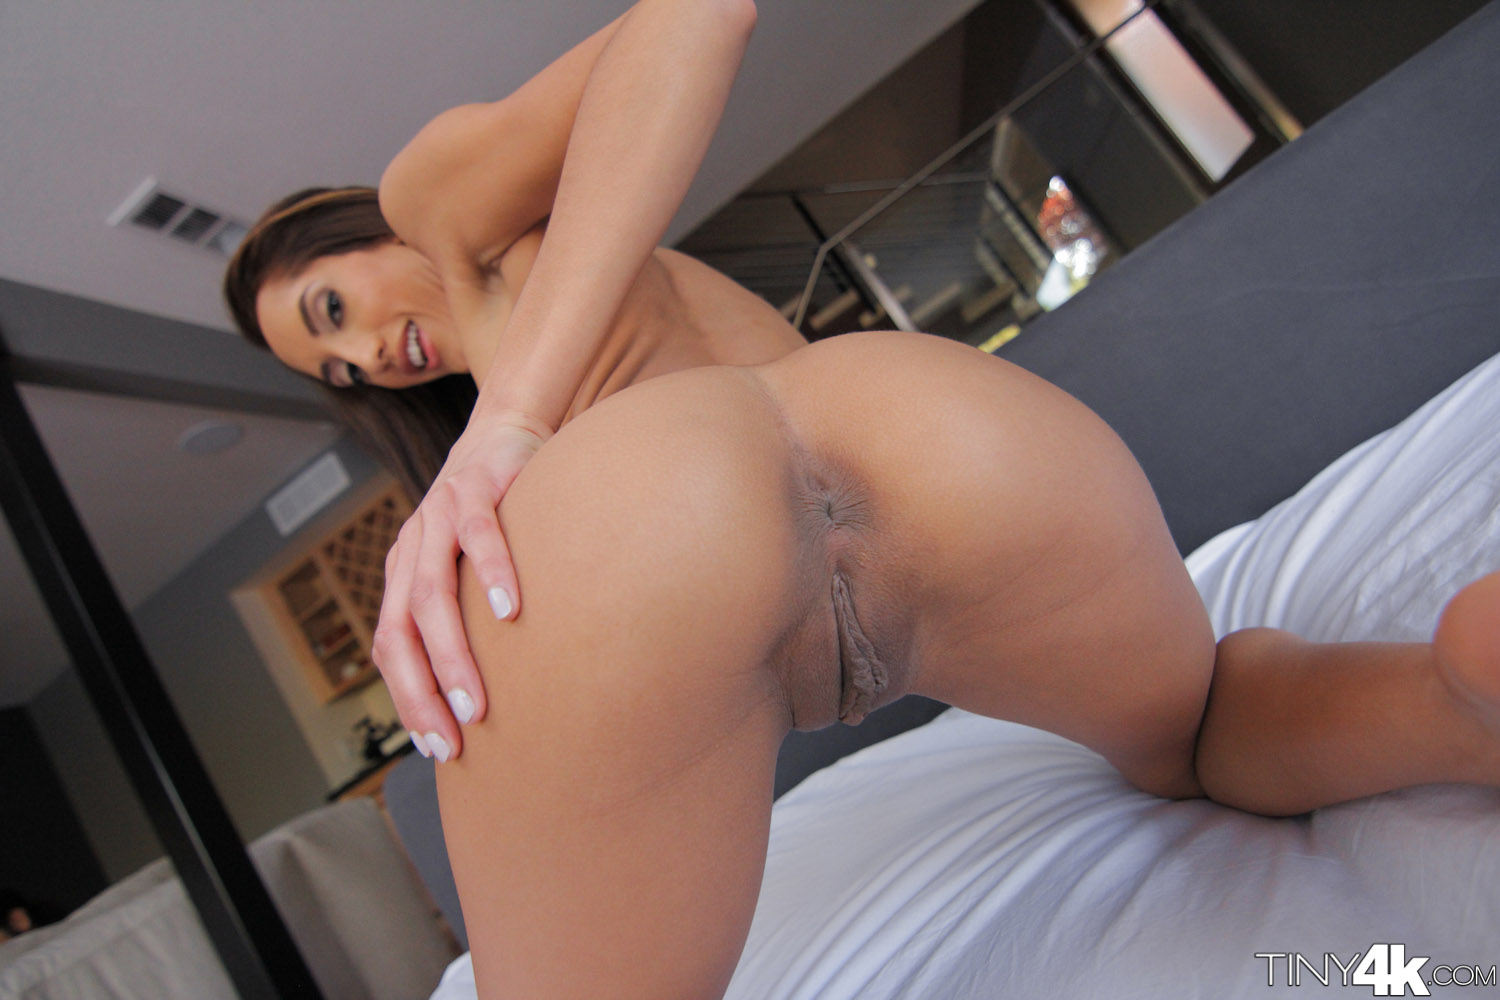 4k tiny4k petite latina ava taylor is fucked hard 1